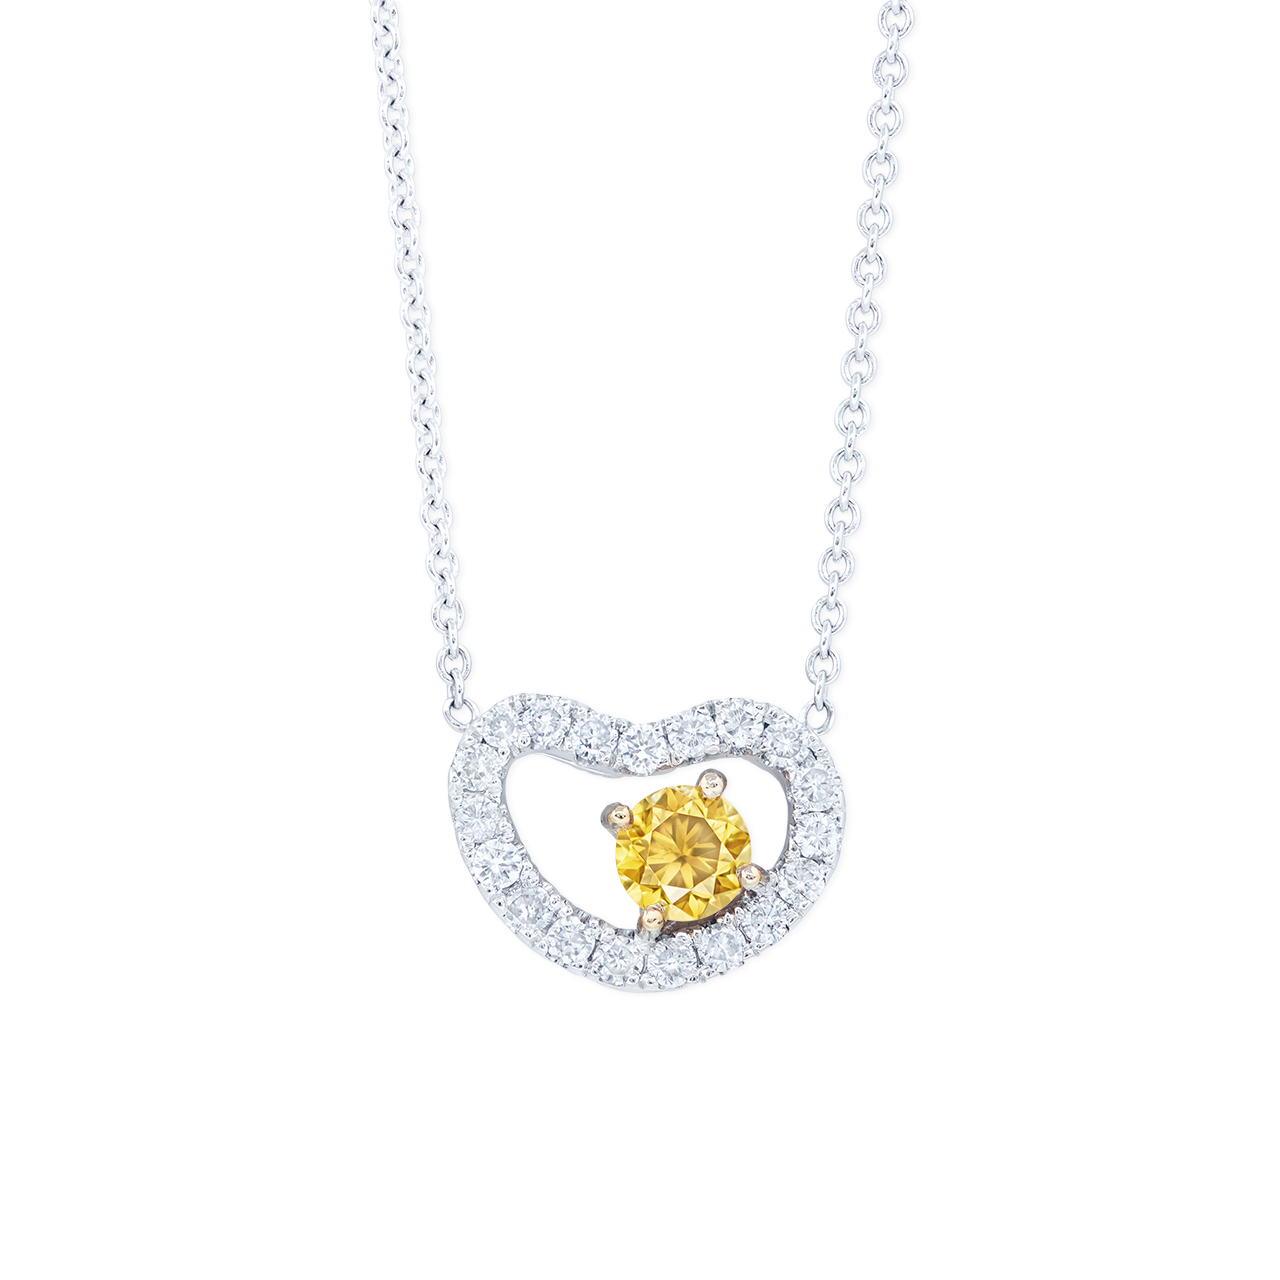 0.23克拉 黃鑽墜鍊